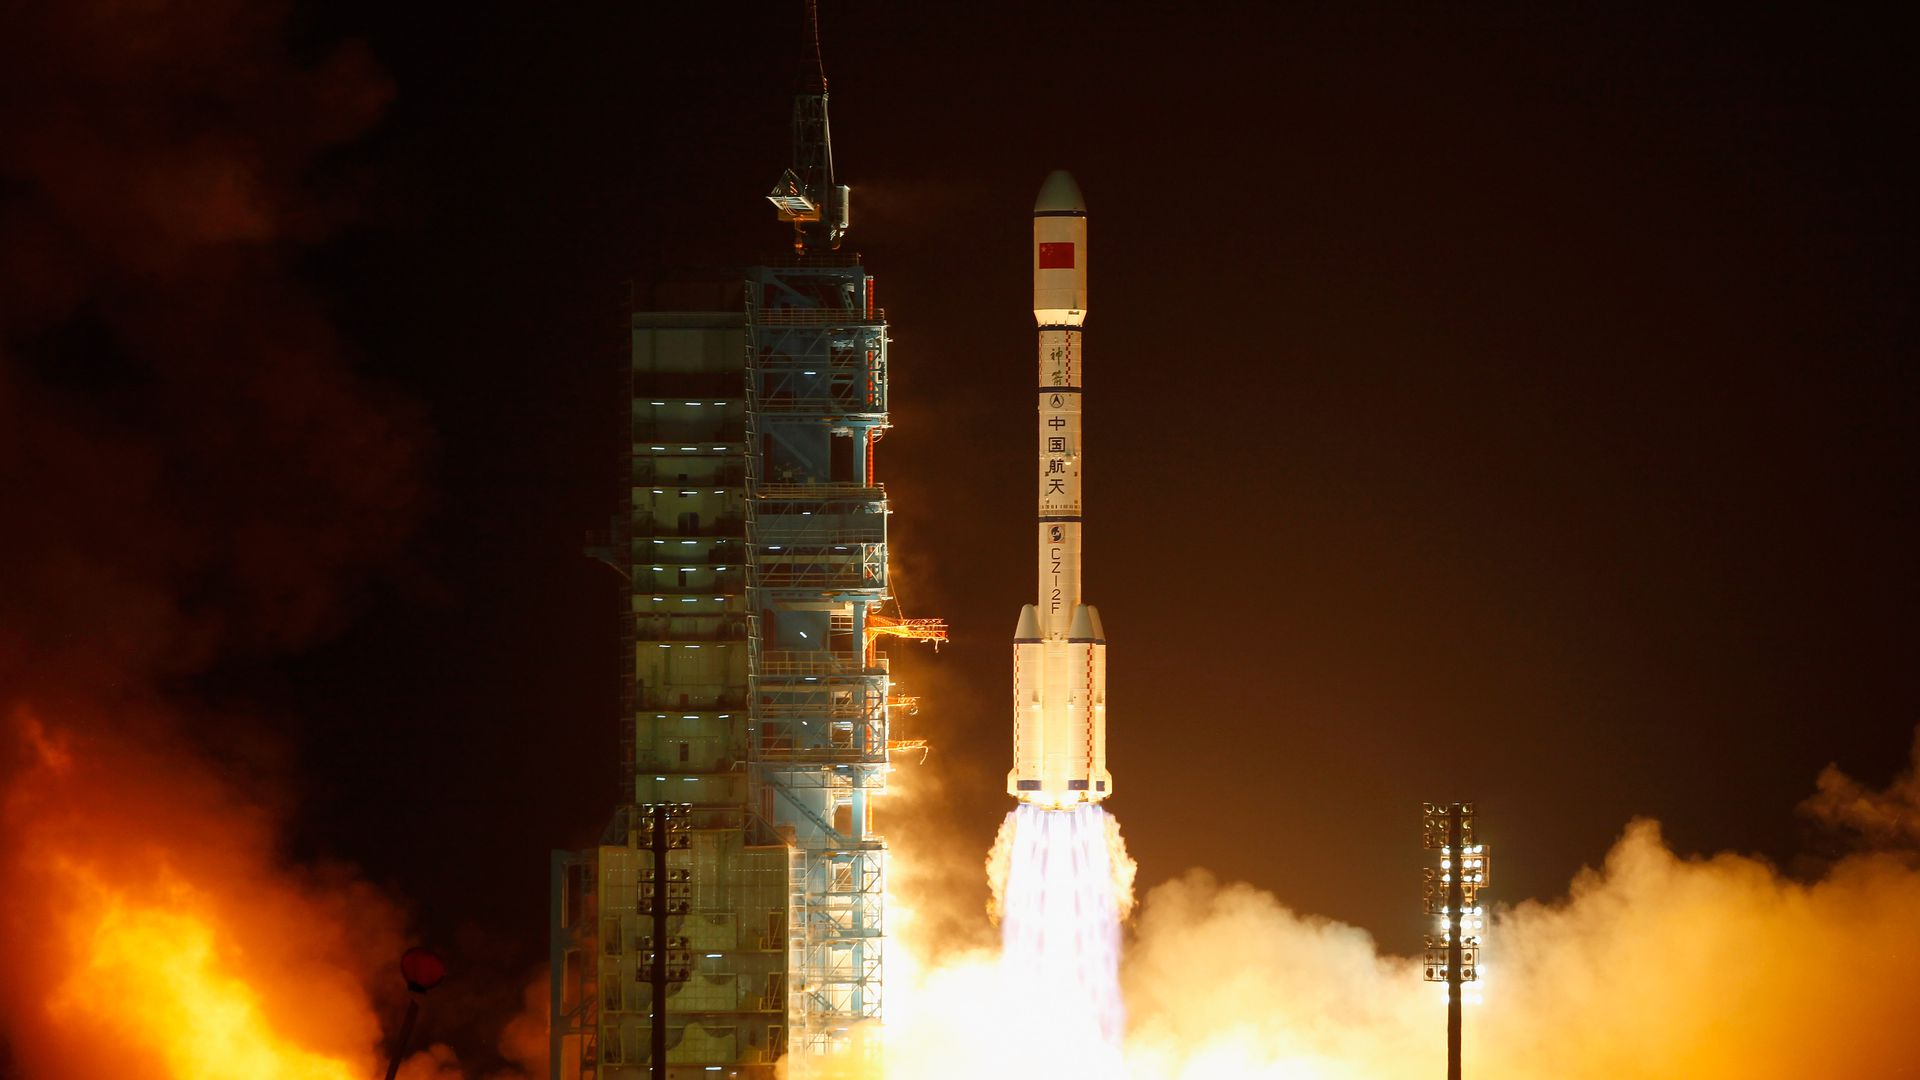 A Long March 2F rocket carrying Tiangong-1 lifts off from the Jiuquan Satellite Launch Center